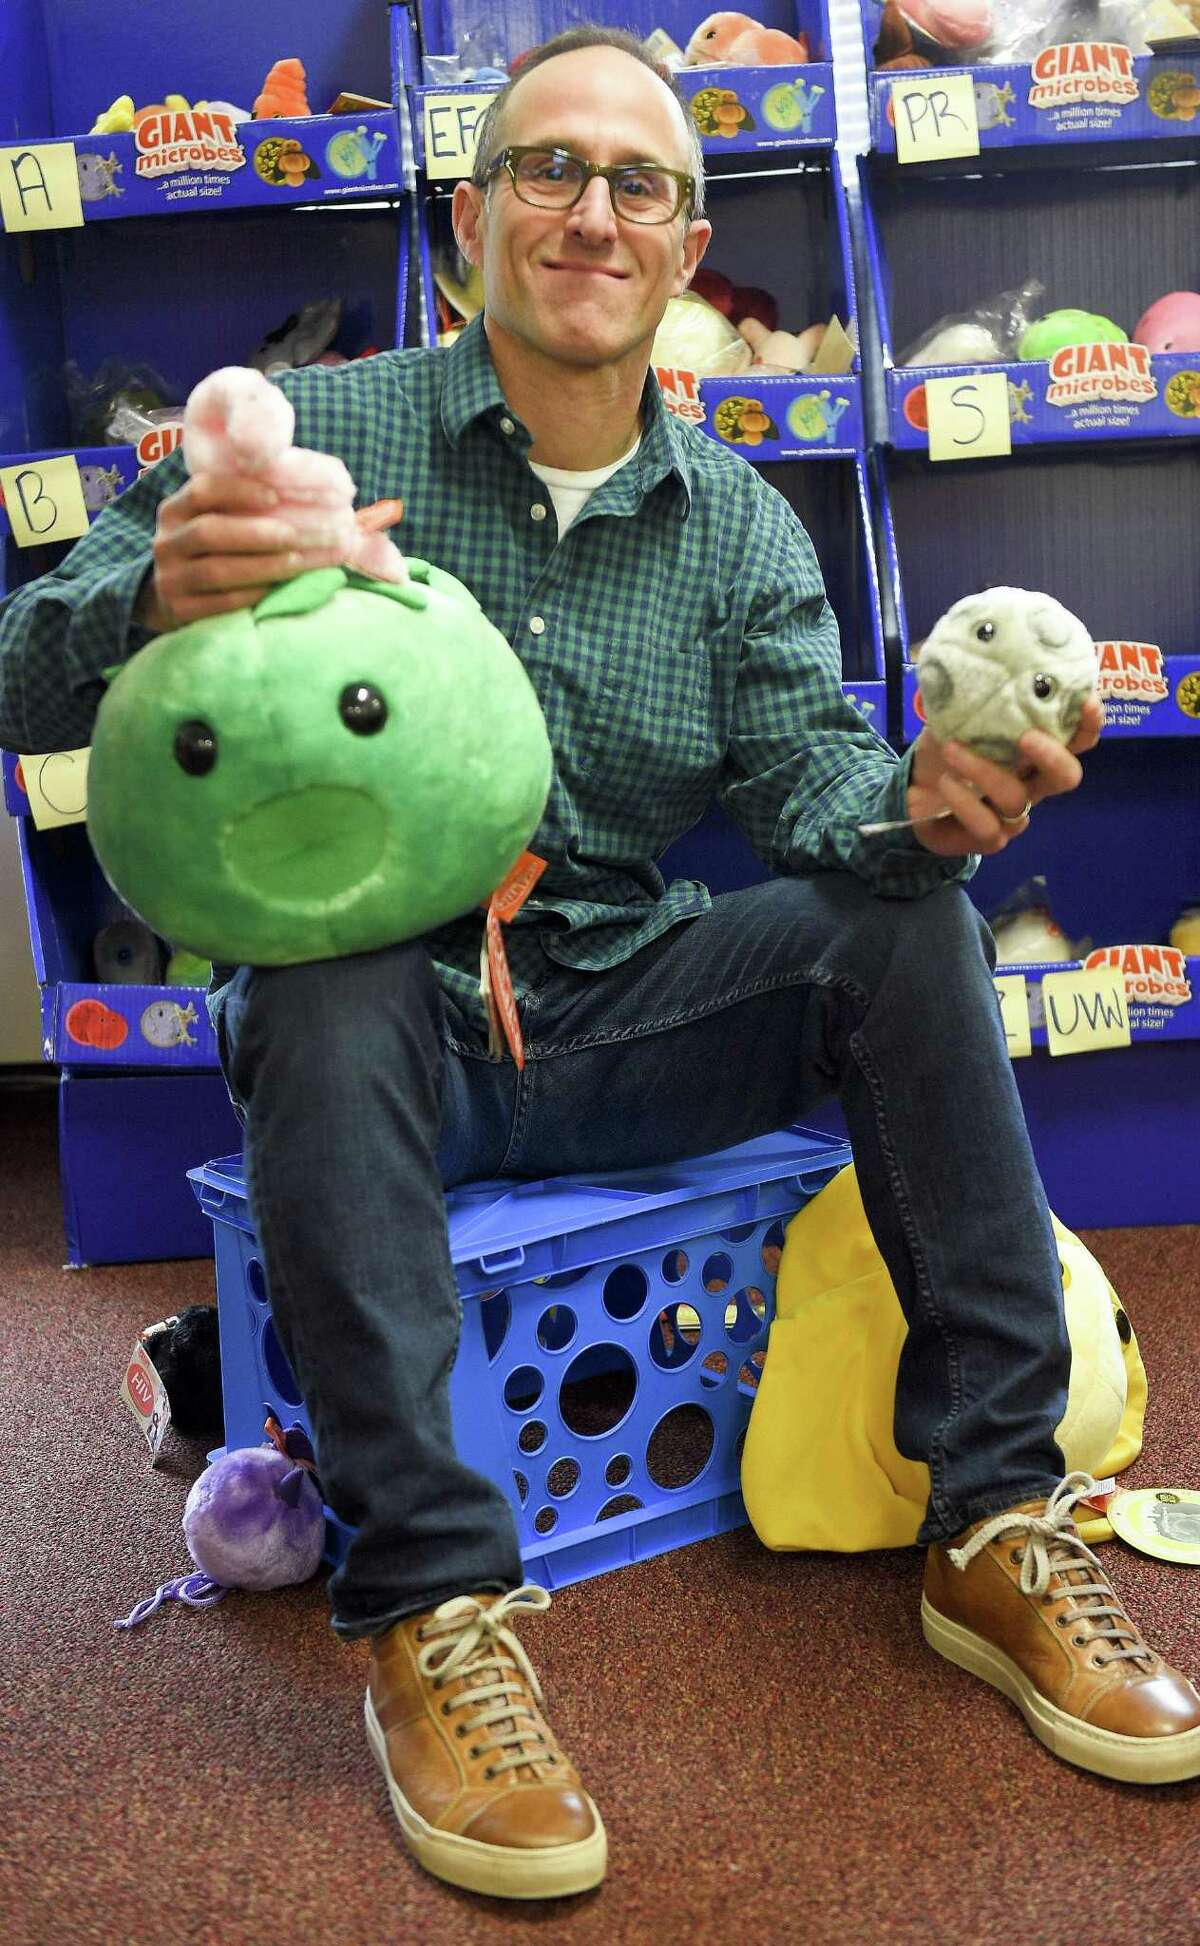 Andrew Klein, CEO of Giant Microbes, a Stamford-based toymaker is photographed on April 6, 2018 in Stamford, Connecticut. Klein's company recently released plush dolls depicting sexually transmitted diseases, such as Chlamydia and Herpes, along with eight other commonly known STD's, as part of the STD awareness month campaign.